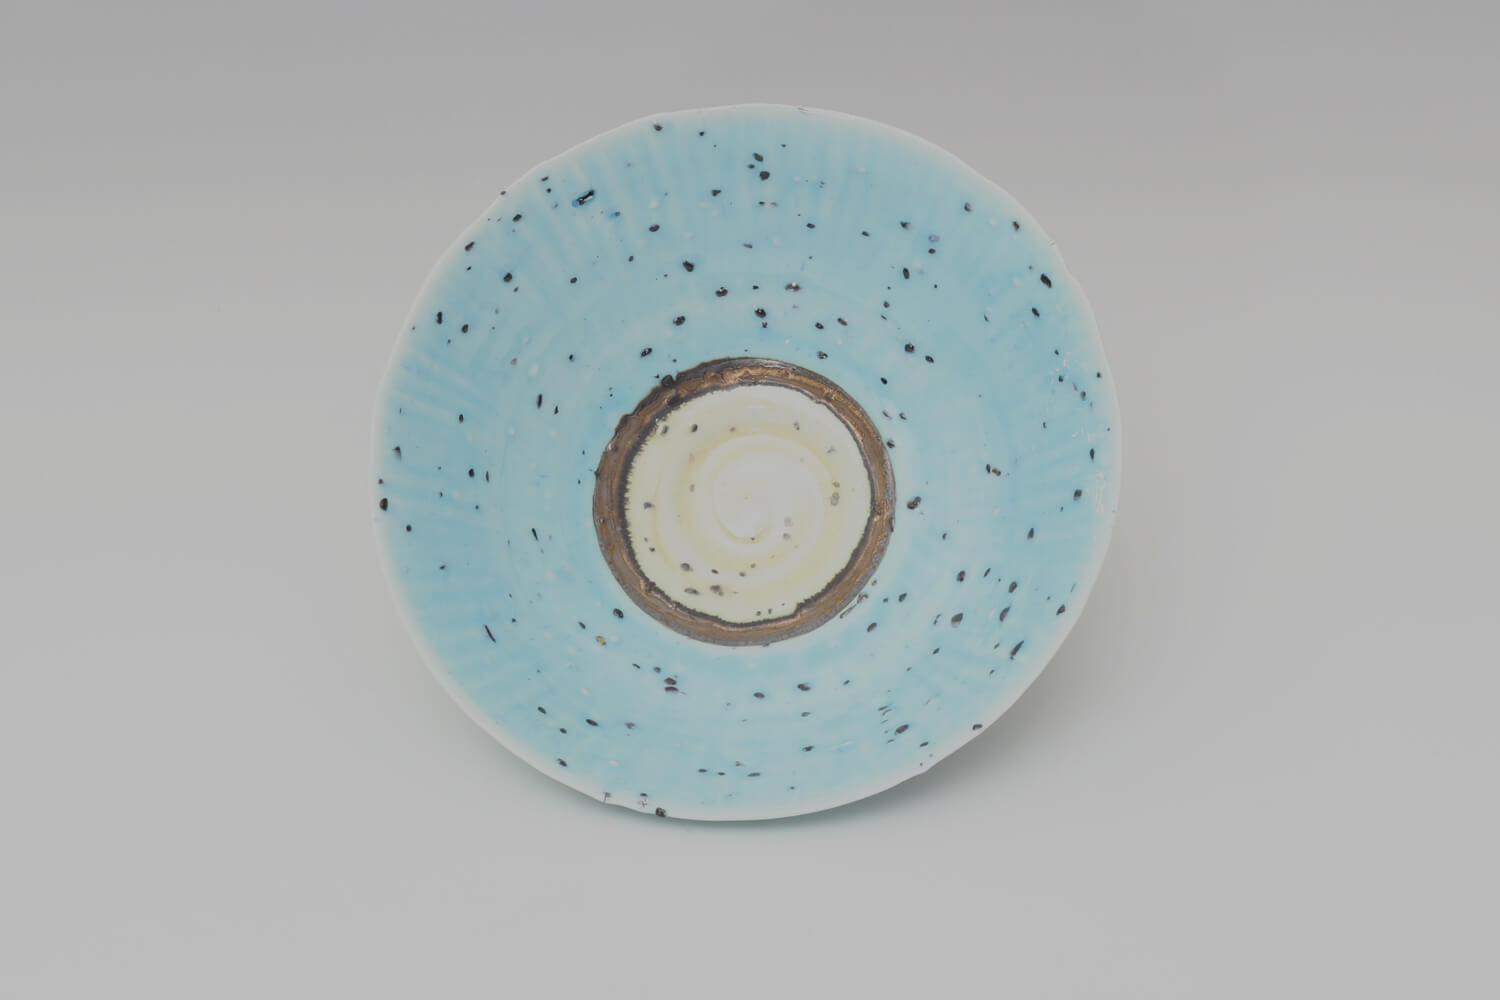 Peter Wills Ceramic Pale Blue River Grogged Porcelain Bowl 194